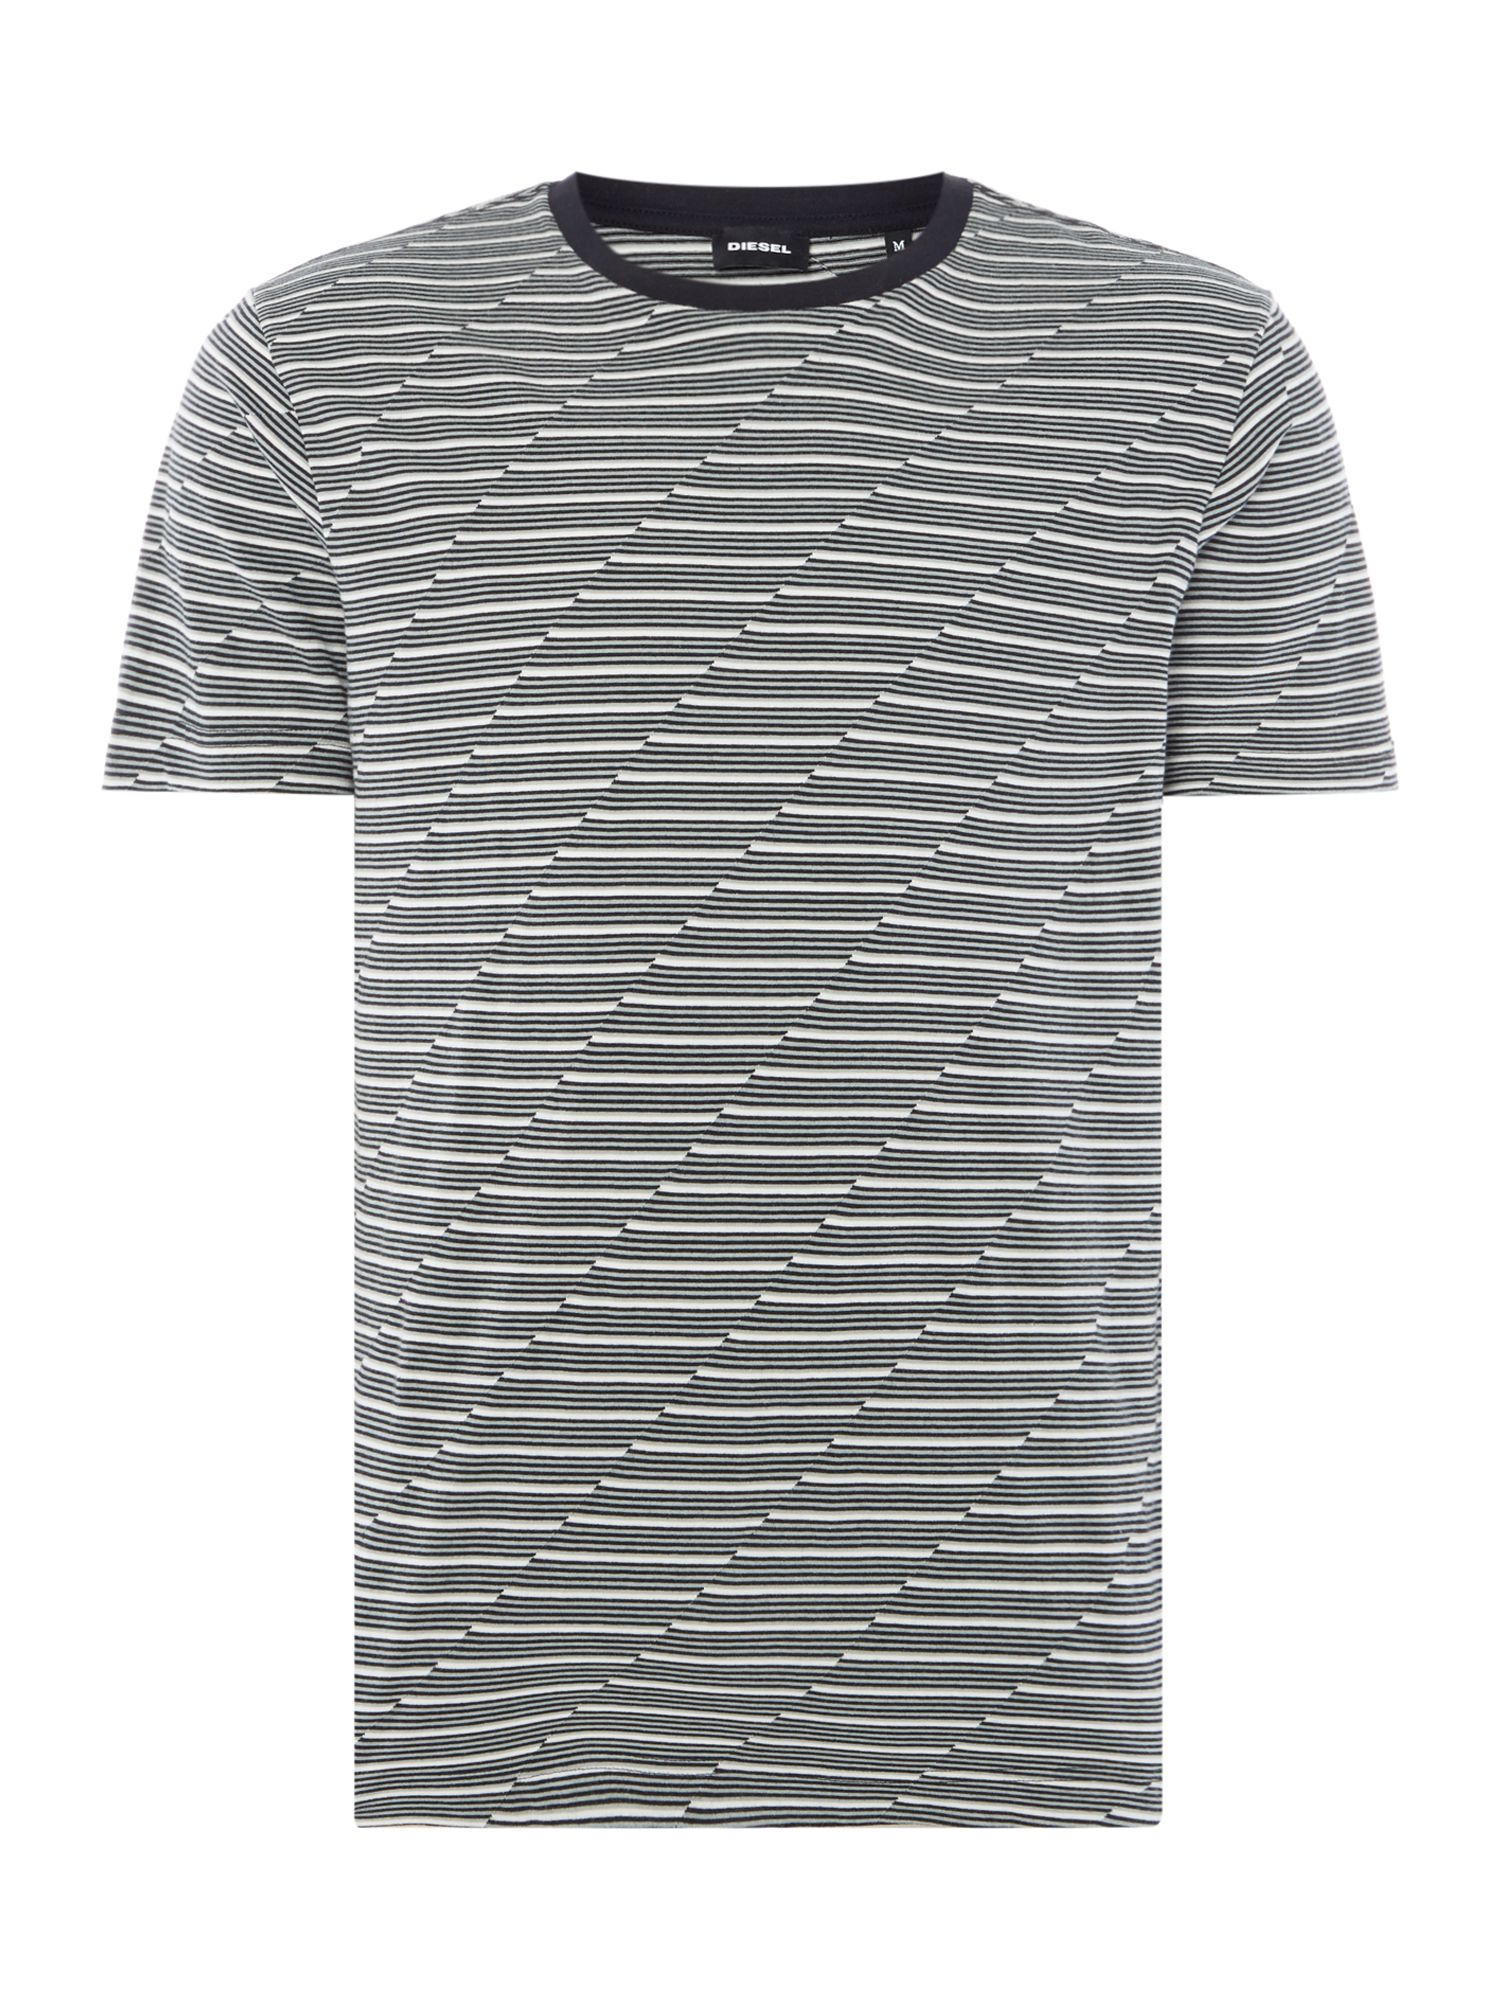 Men's Diesel Striped Tshirt, Black